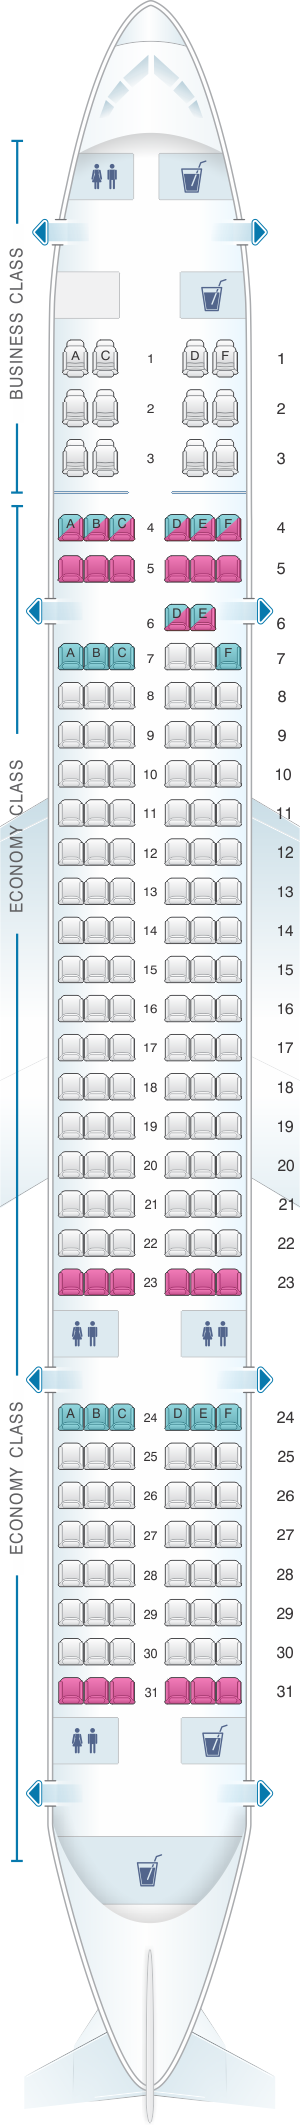 Seat map for US Airways Boeing B757 200 176pax